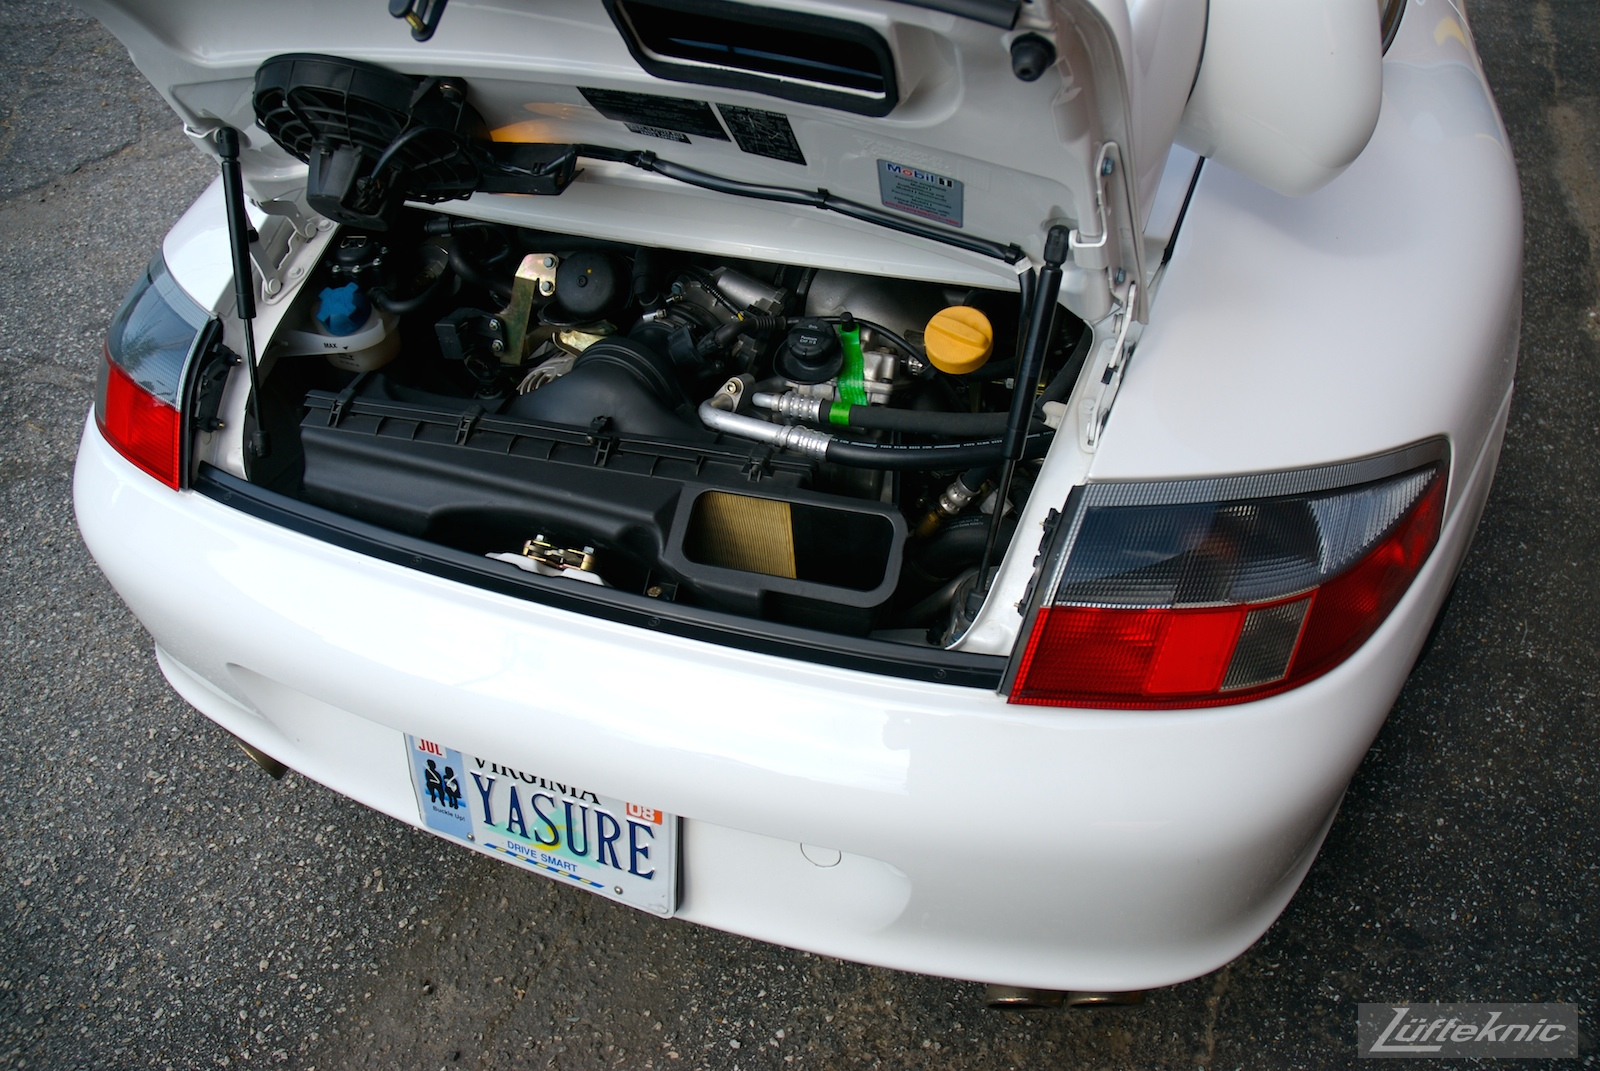 A track-prepped white Porsche 996 Gt3 with Fikse wheels.